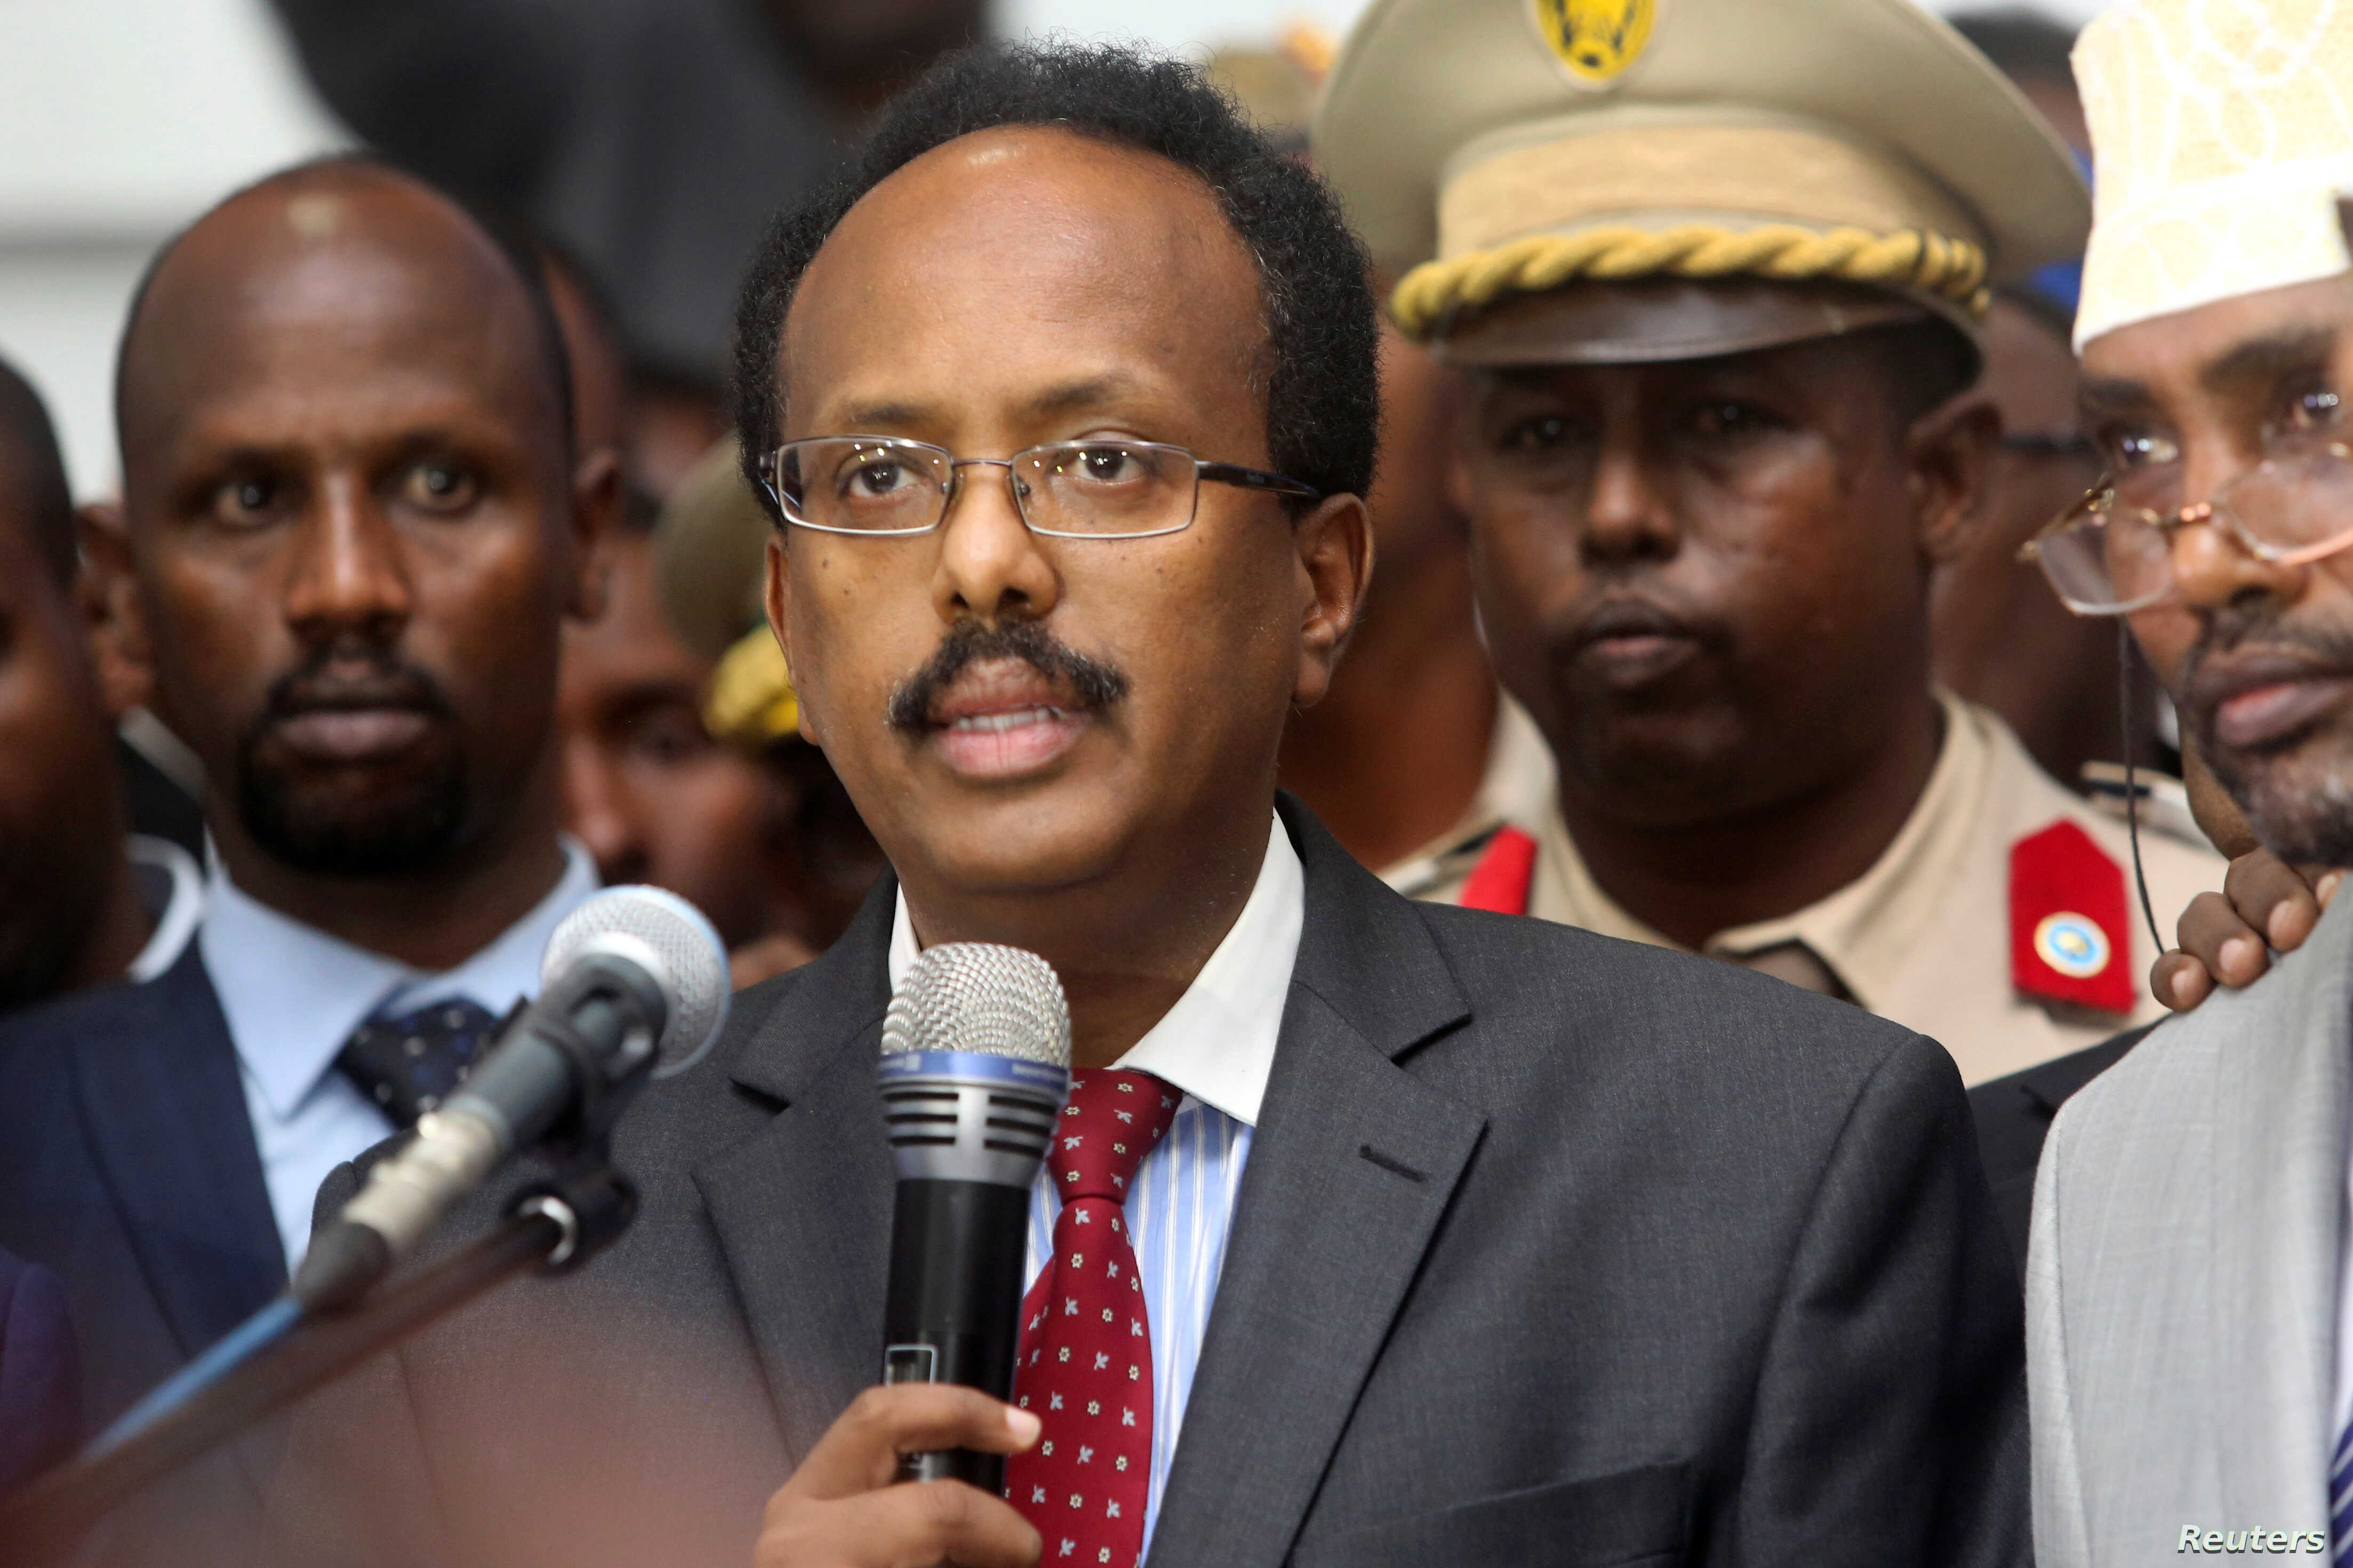 Somalia's President Mohamed Abdullahi Farmajo addresses lawmakers in the capital Mogadishu, Feb. 8, 2017.